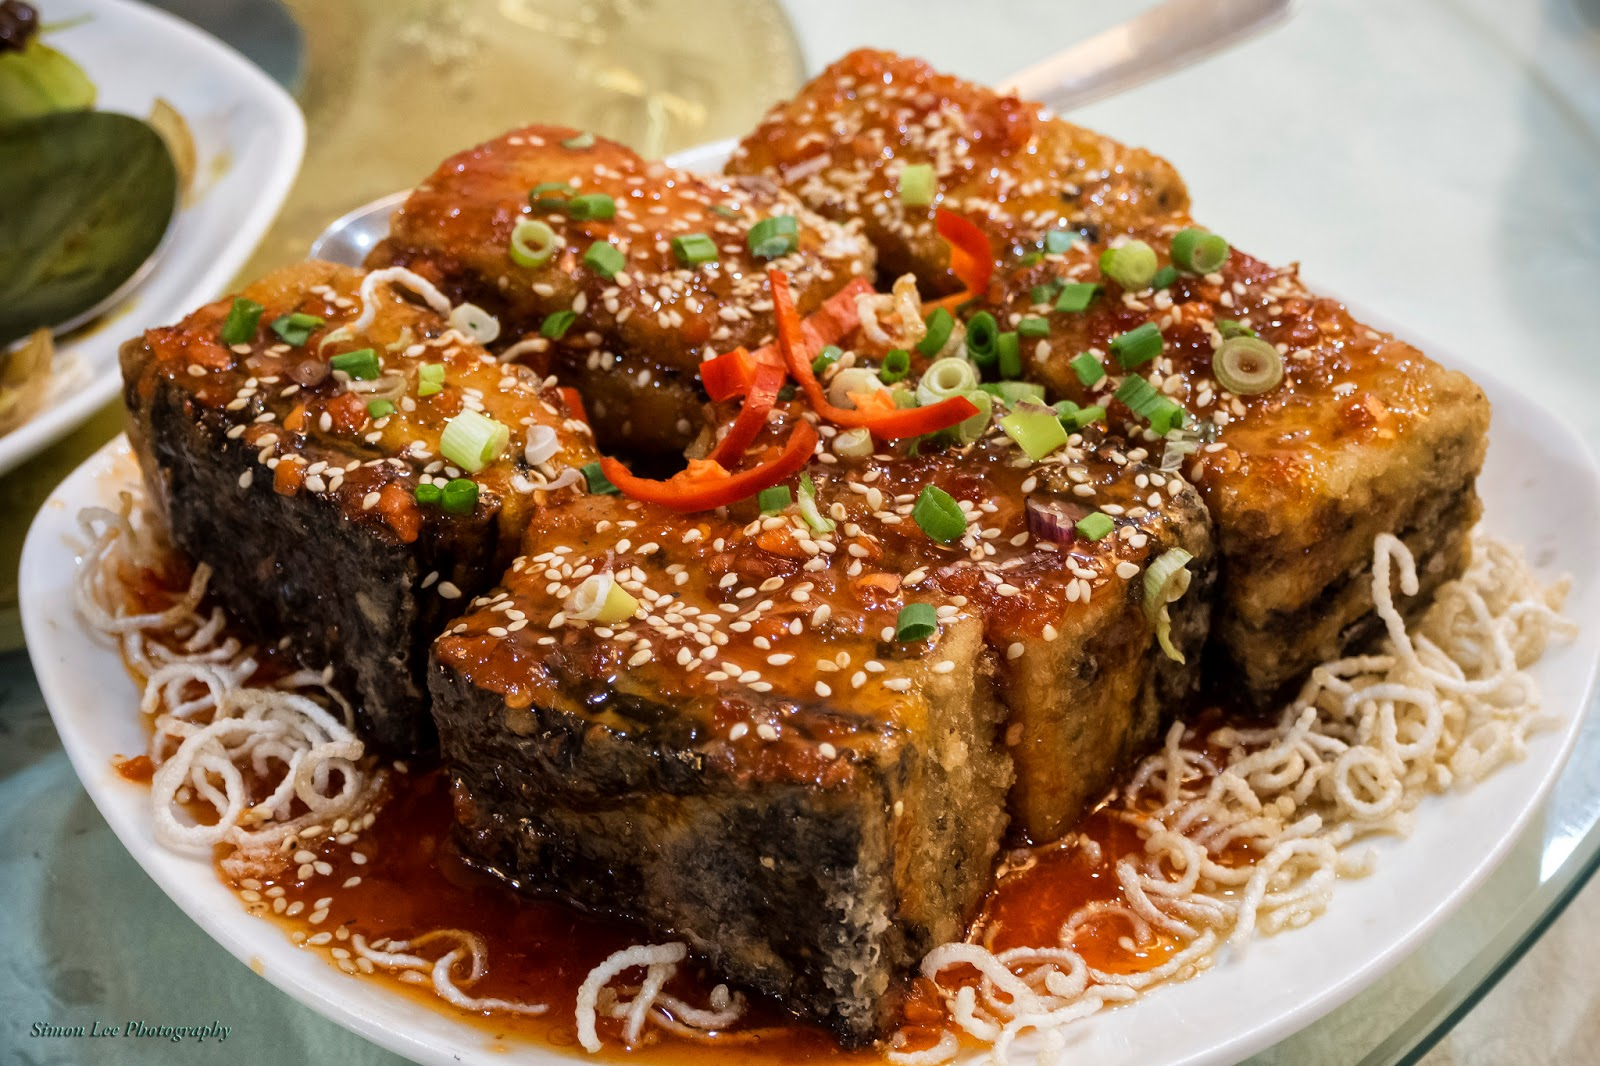 Delicious food at 39 friends chinese cuisine 39 simon 39 s photo gallery - Delicious chinese cuisine ...